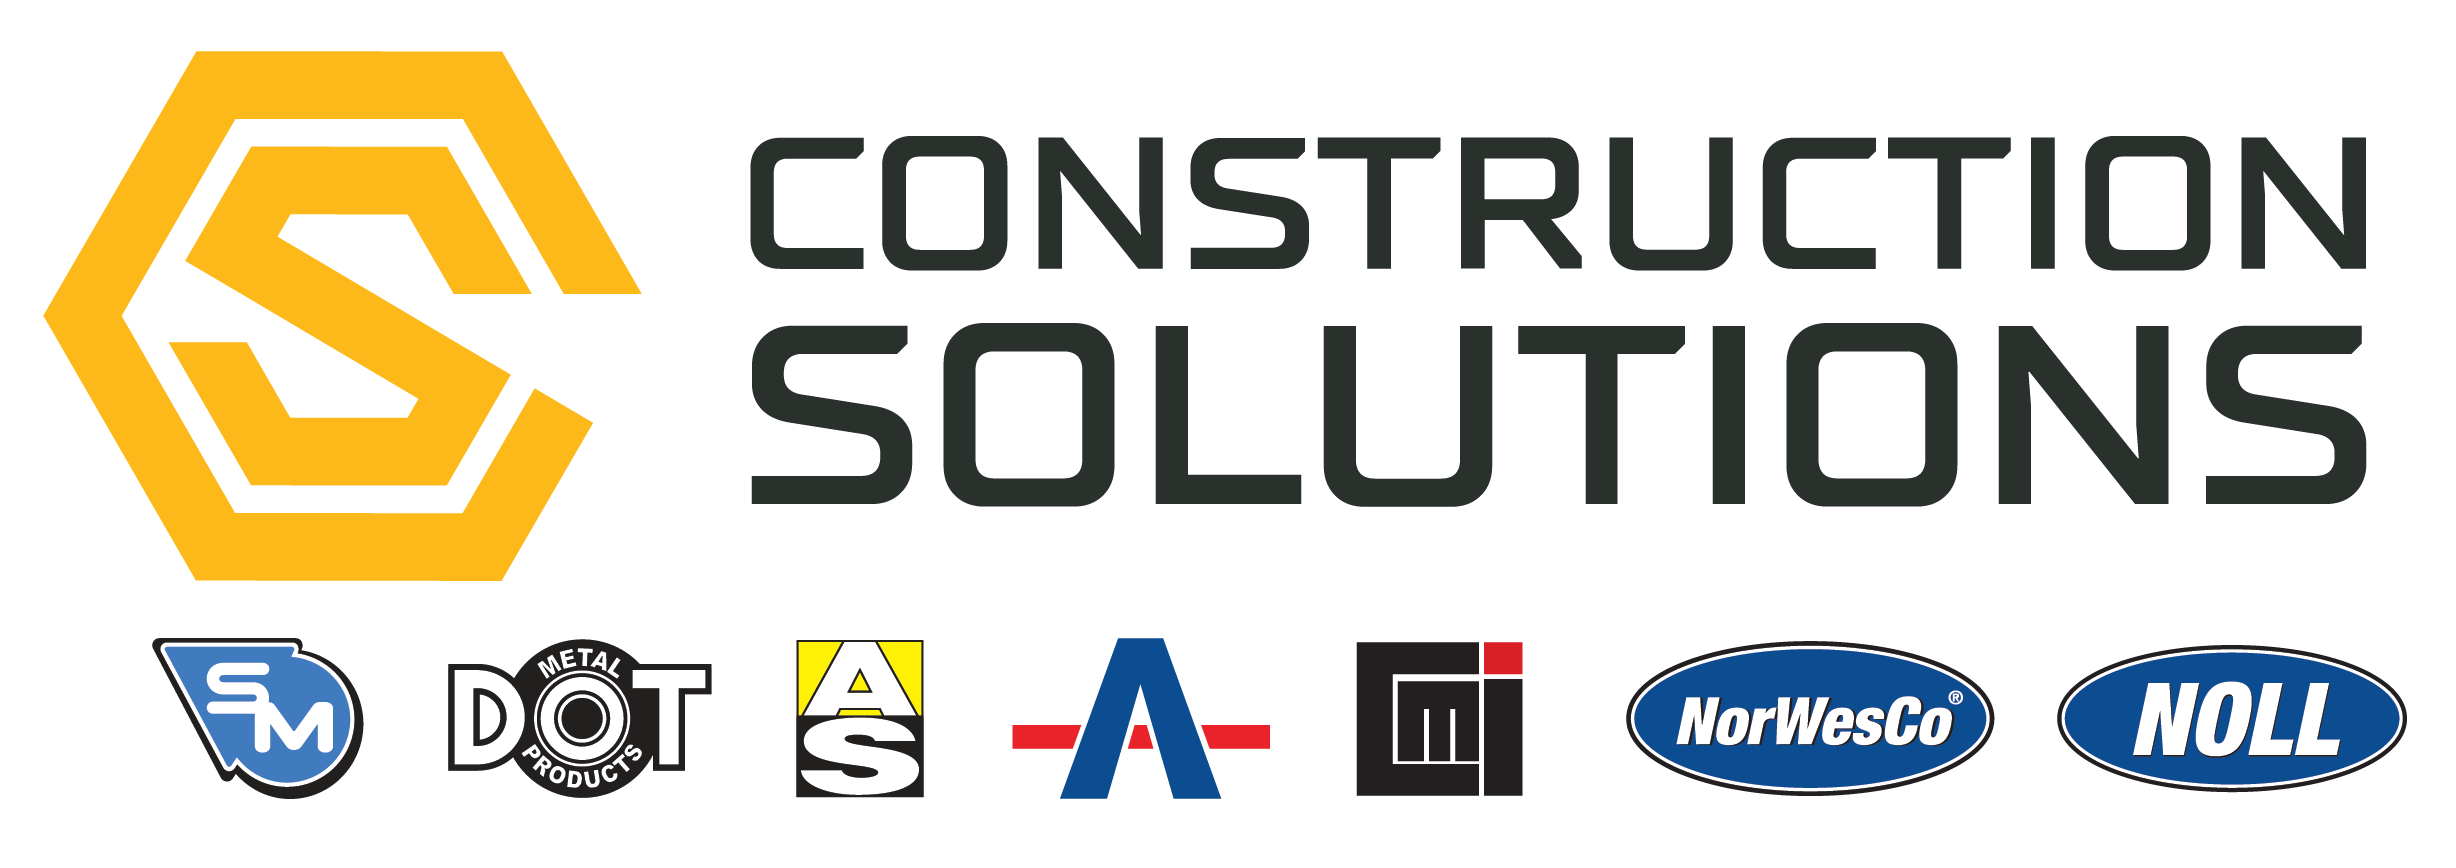 Construction solutions logo -1